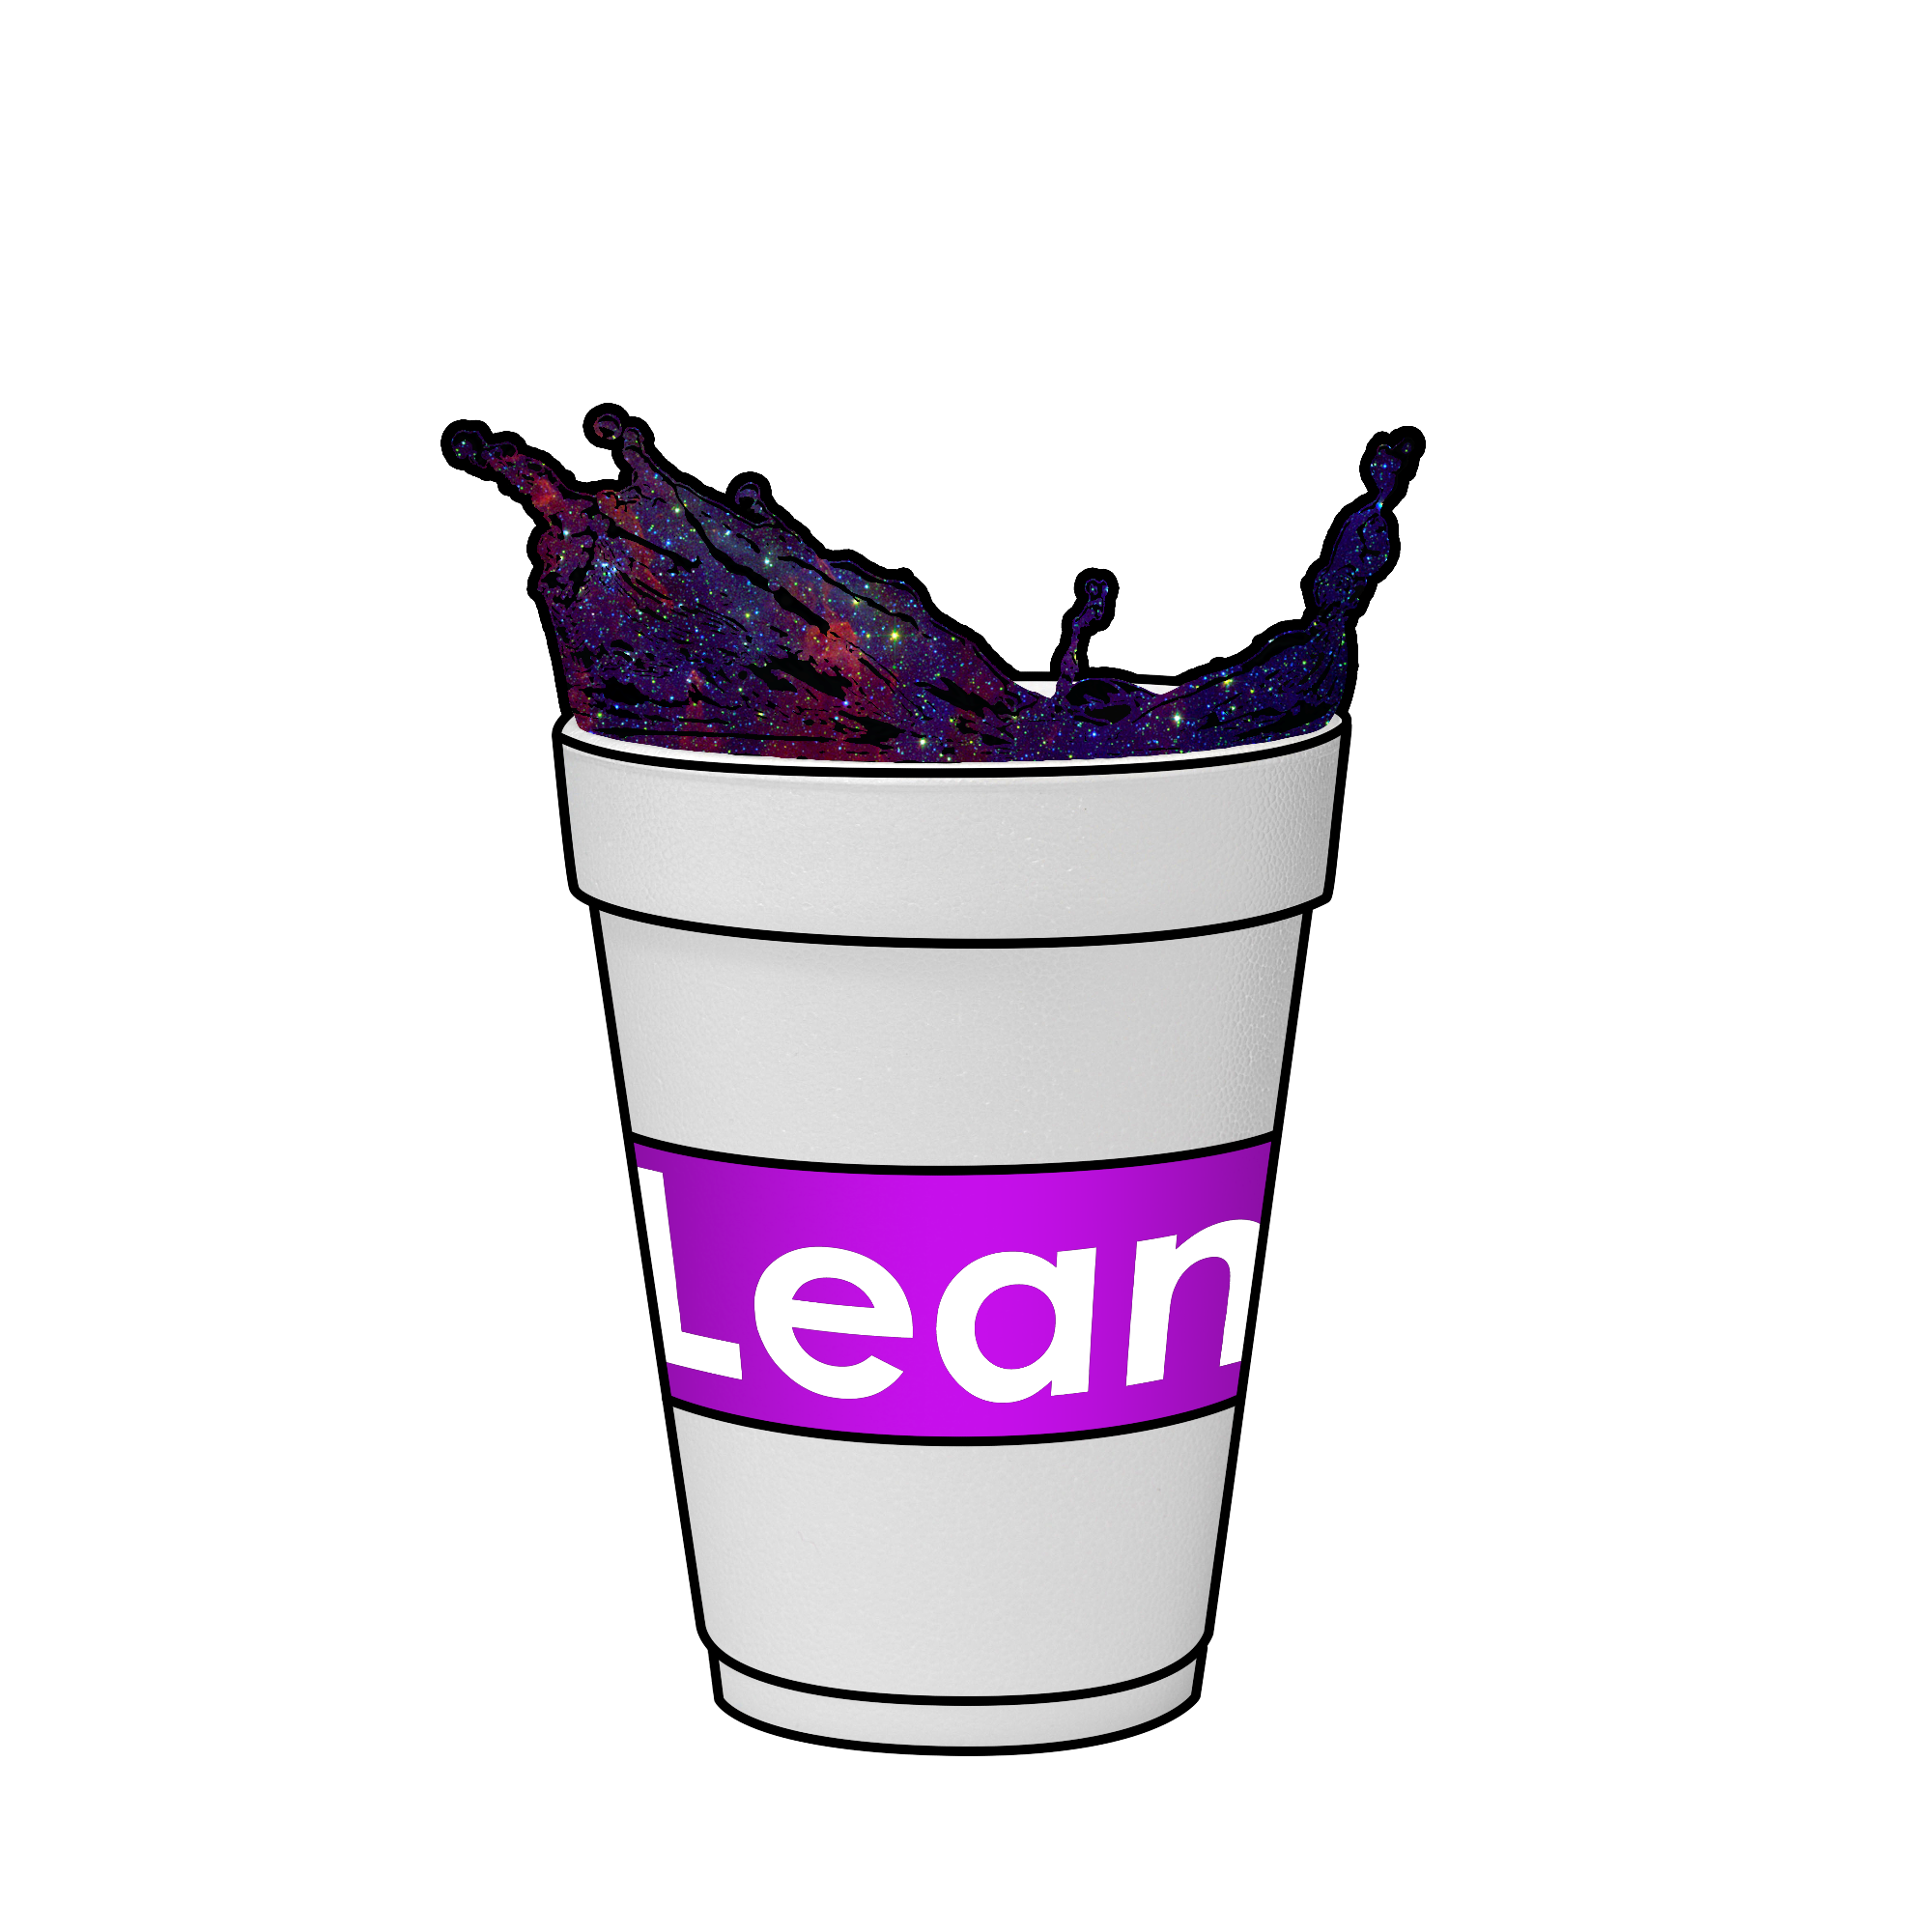 Lean png. Drink pinterest cup full